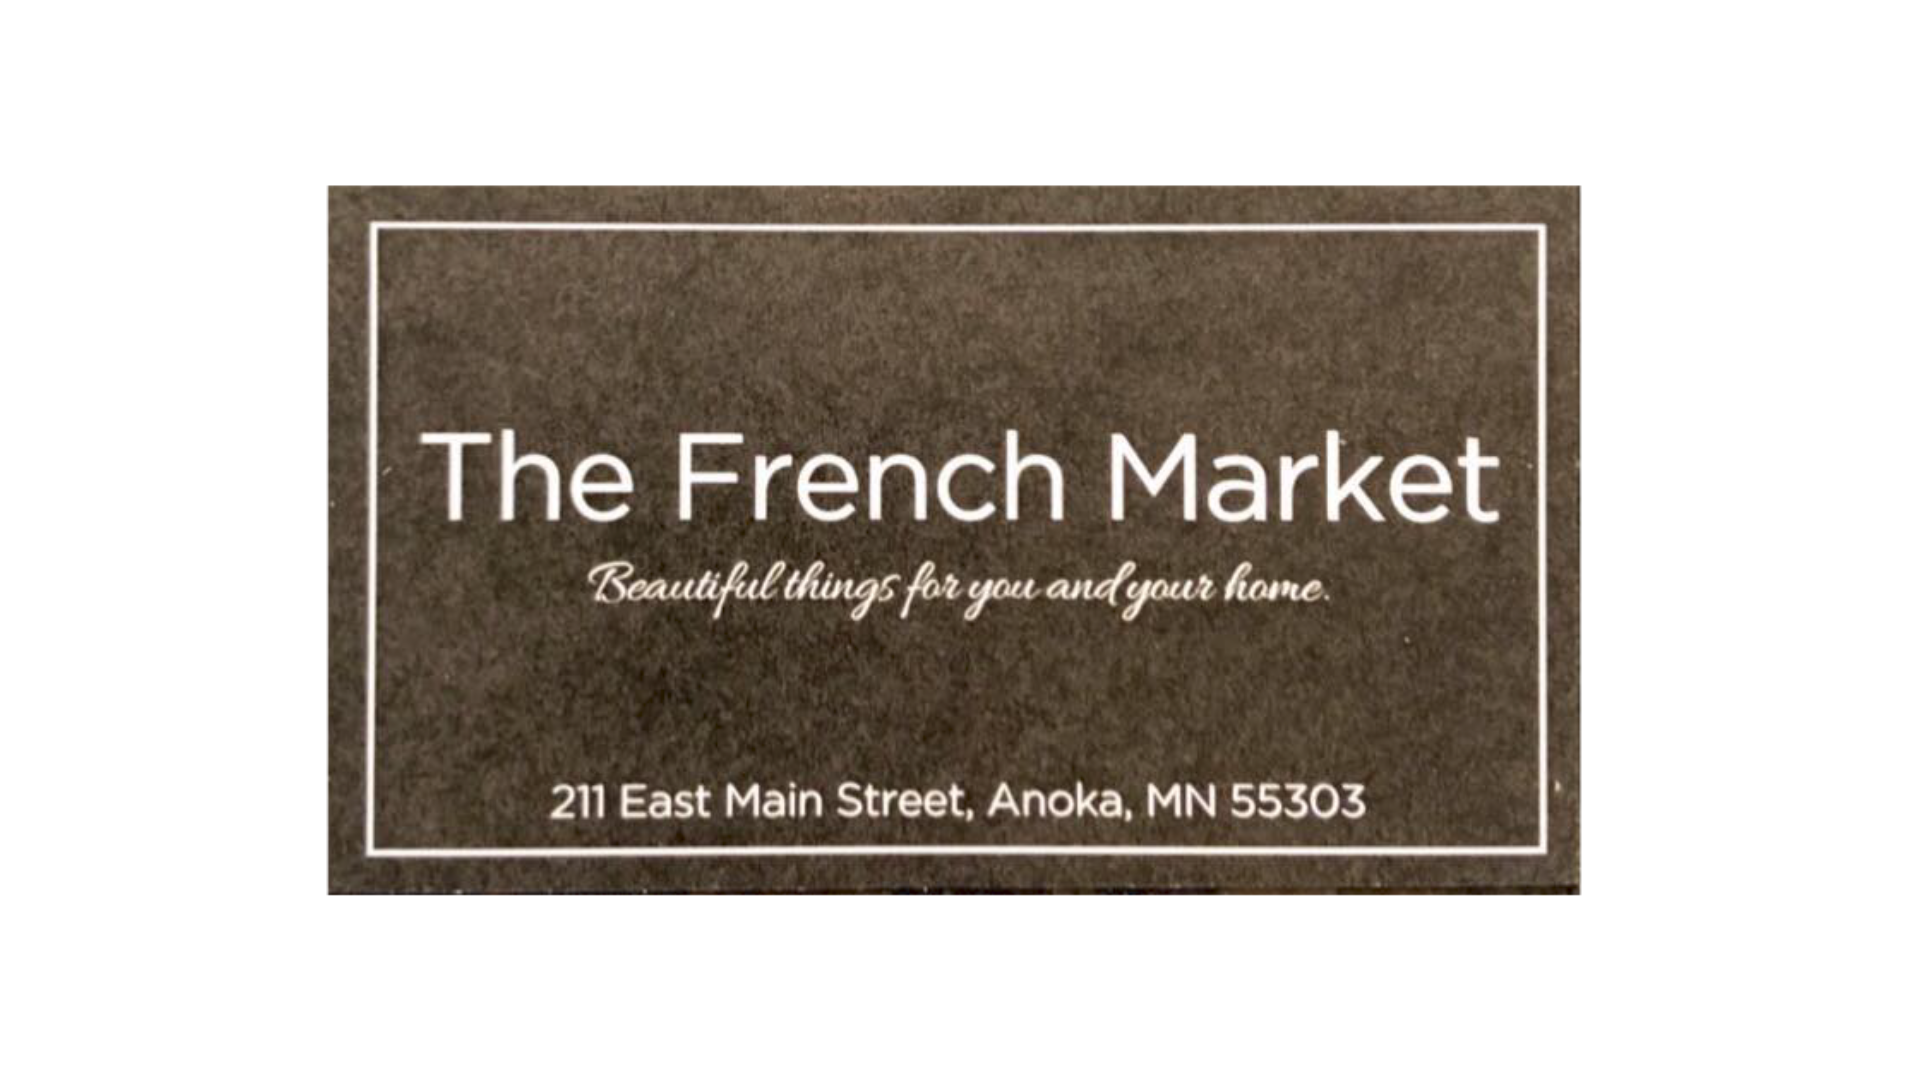 The French Market of Anoka